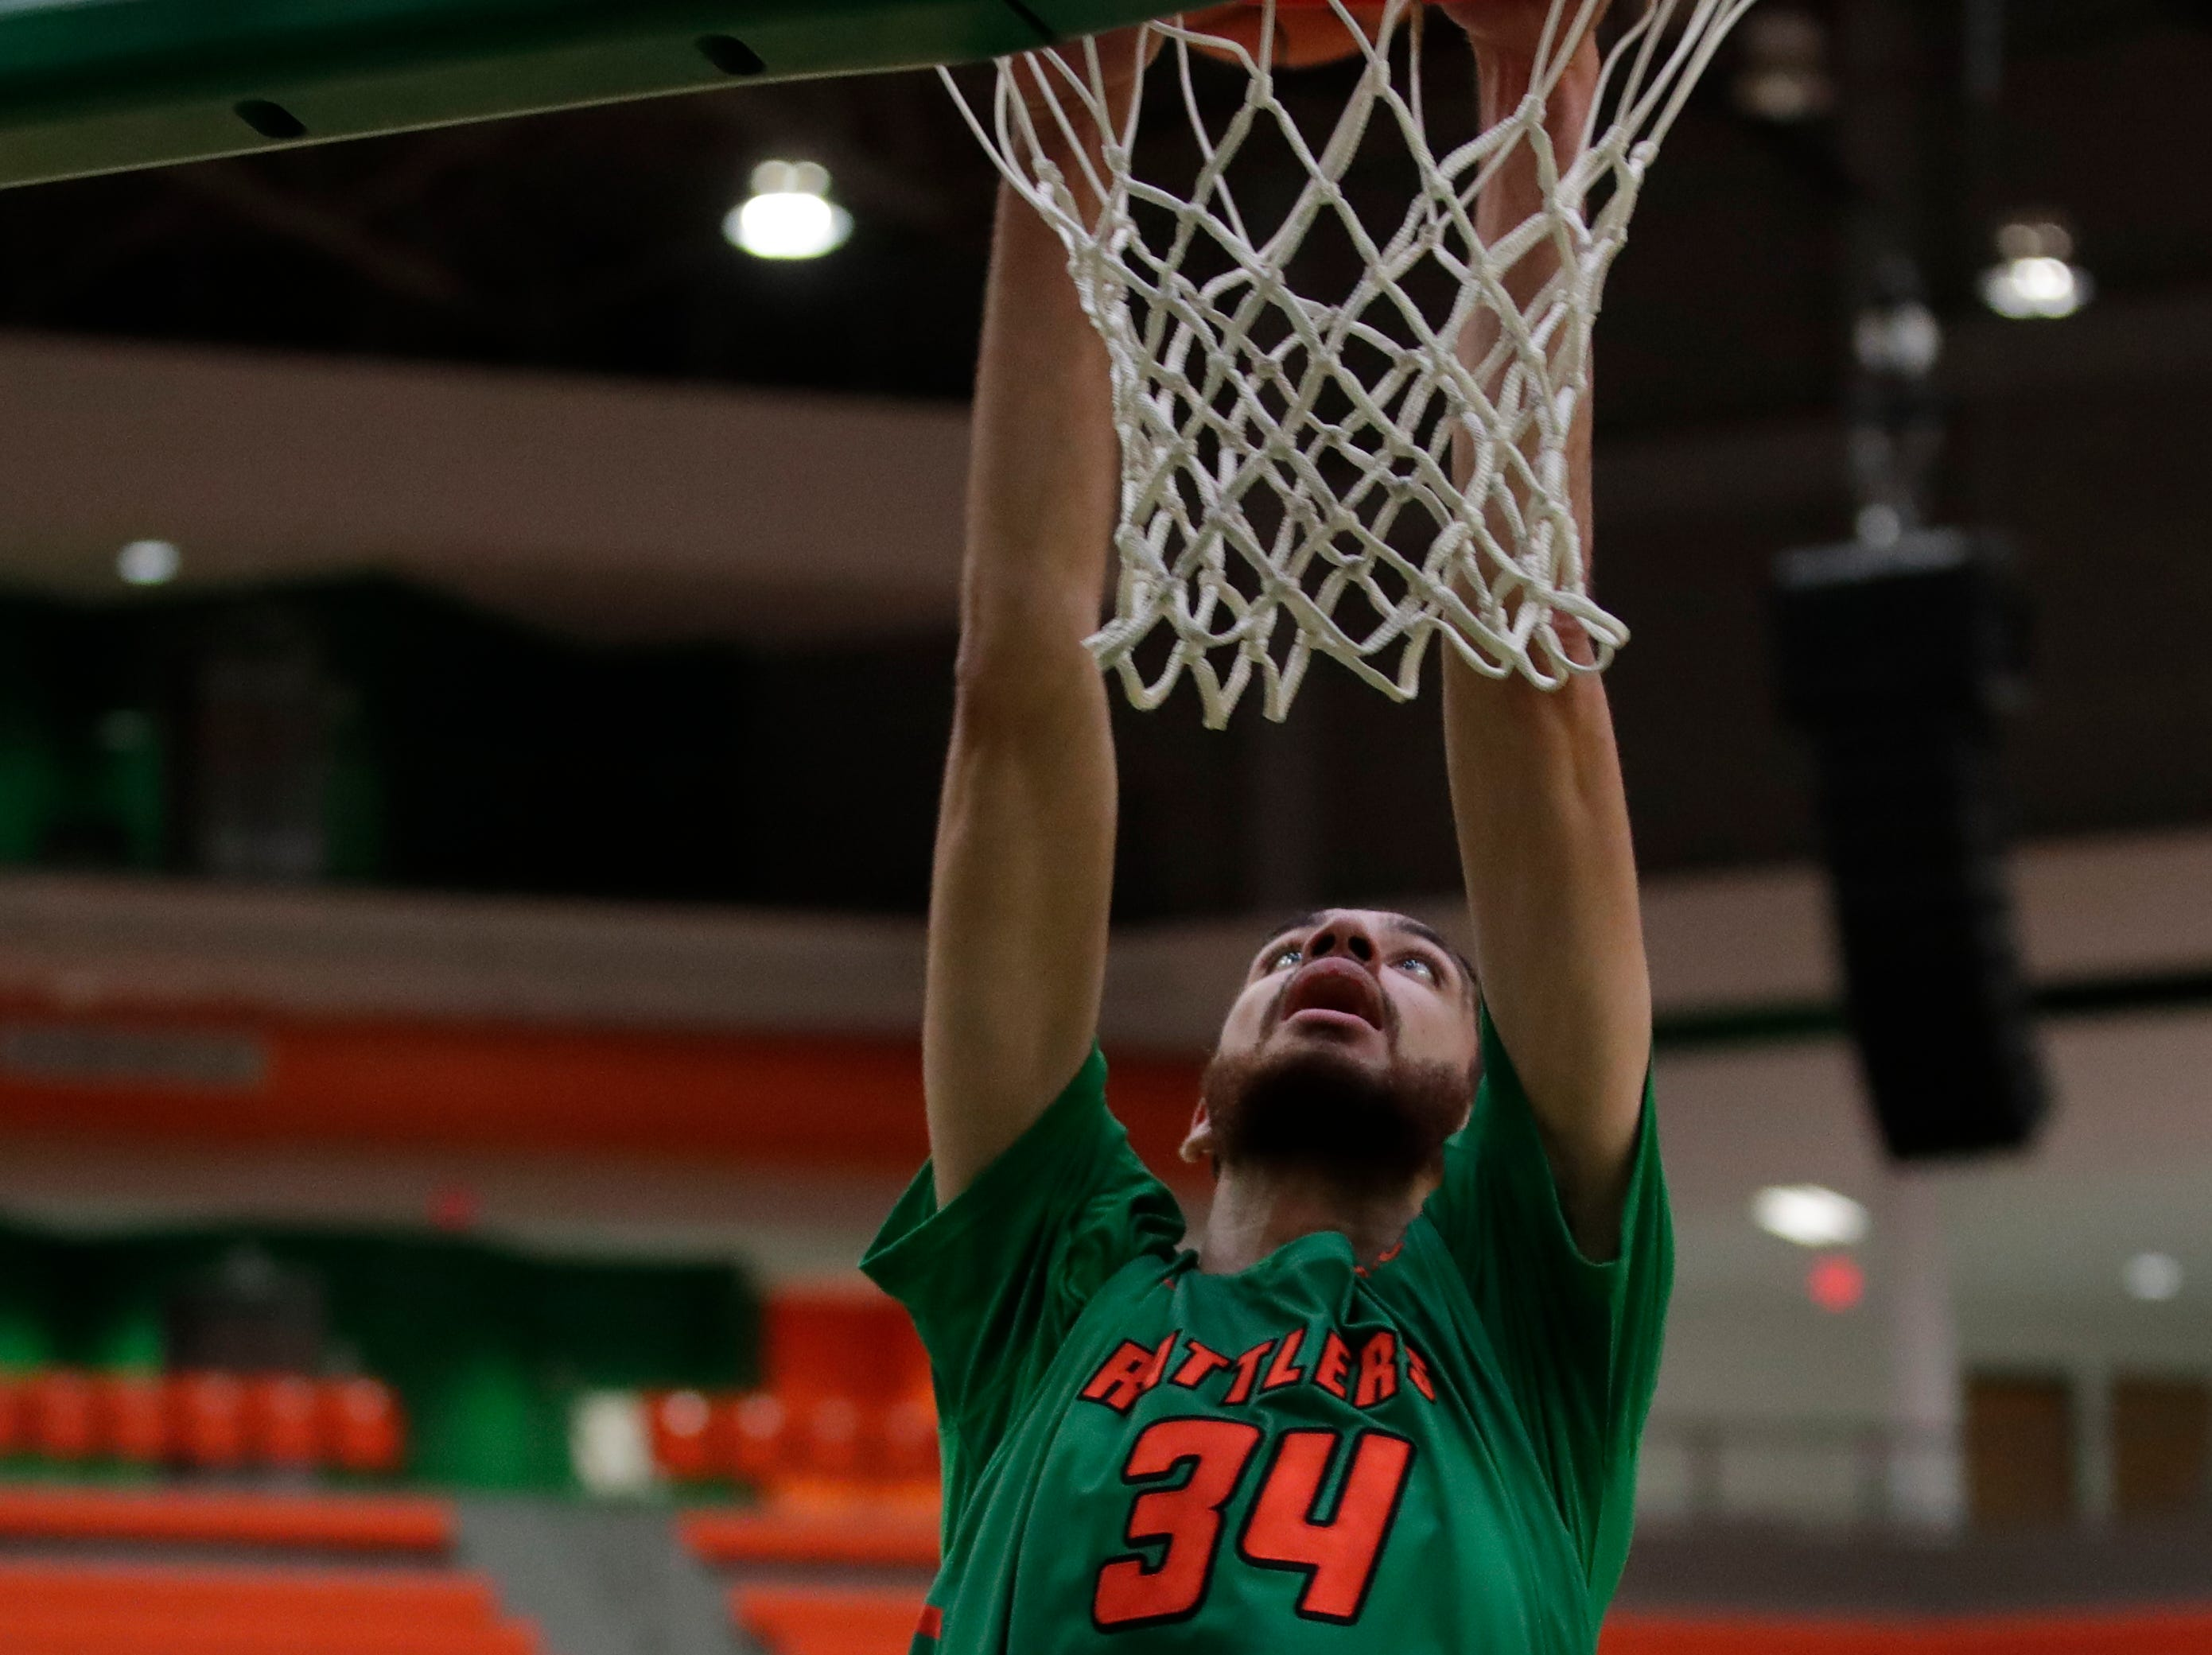 Florida A&M Rattlers center Isaiah Martin (34) dunks during a game between FAMU and Norfolk State at the Alfred Lawson Jr. Multipurpose Center Monday, Feb. 11, 2019.